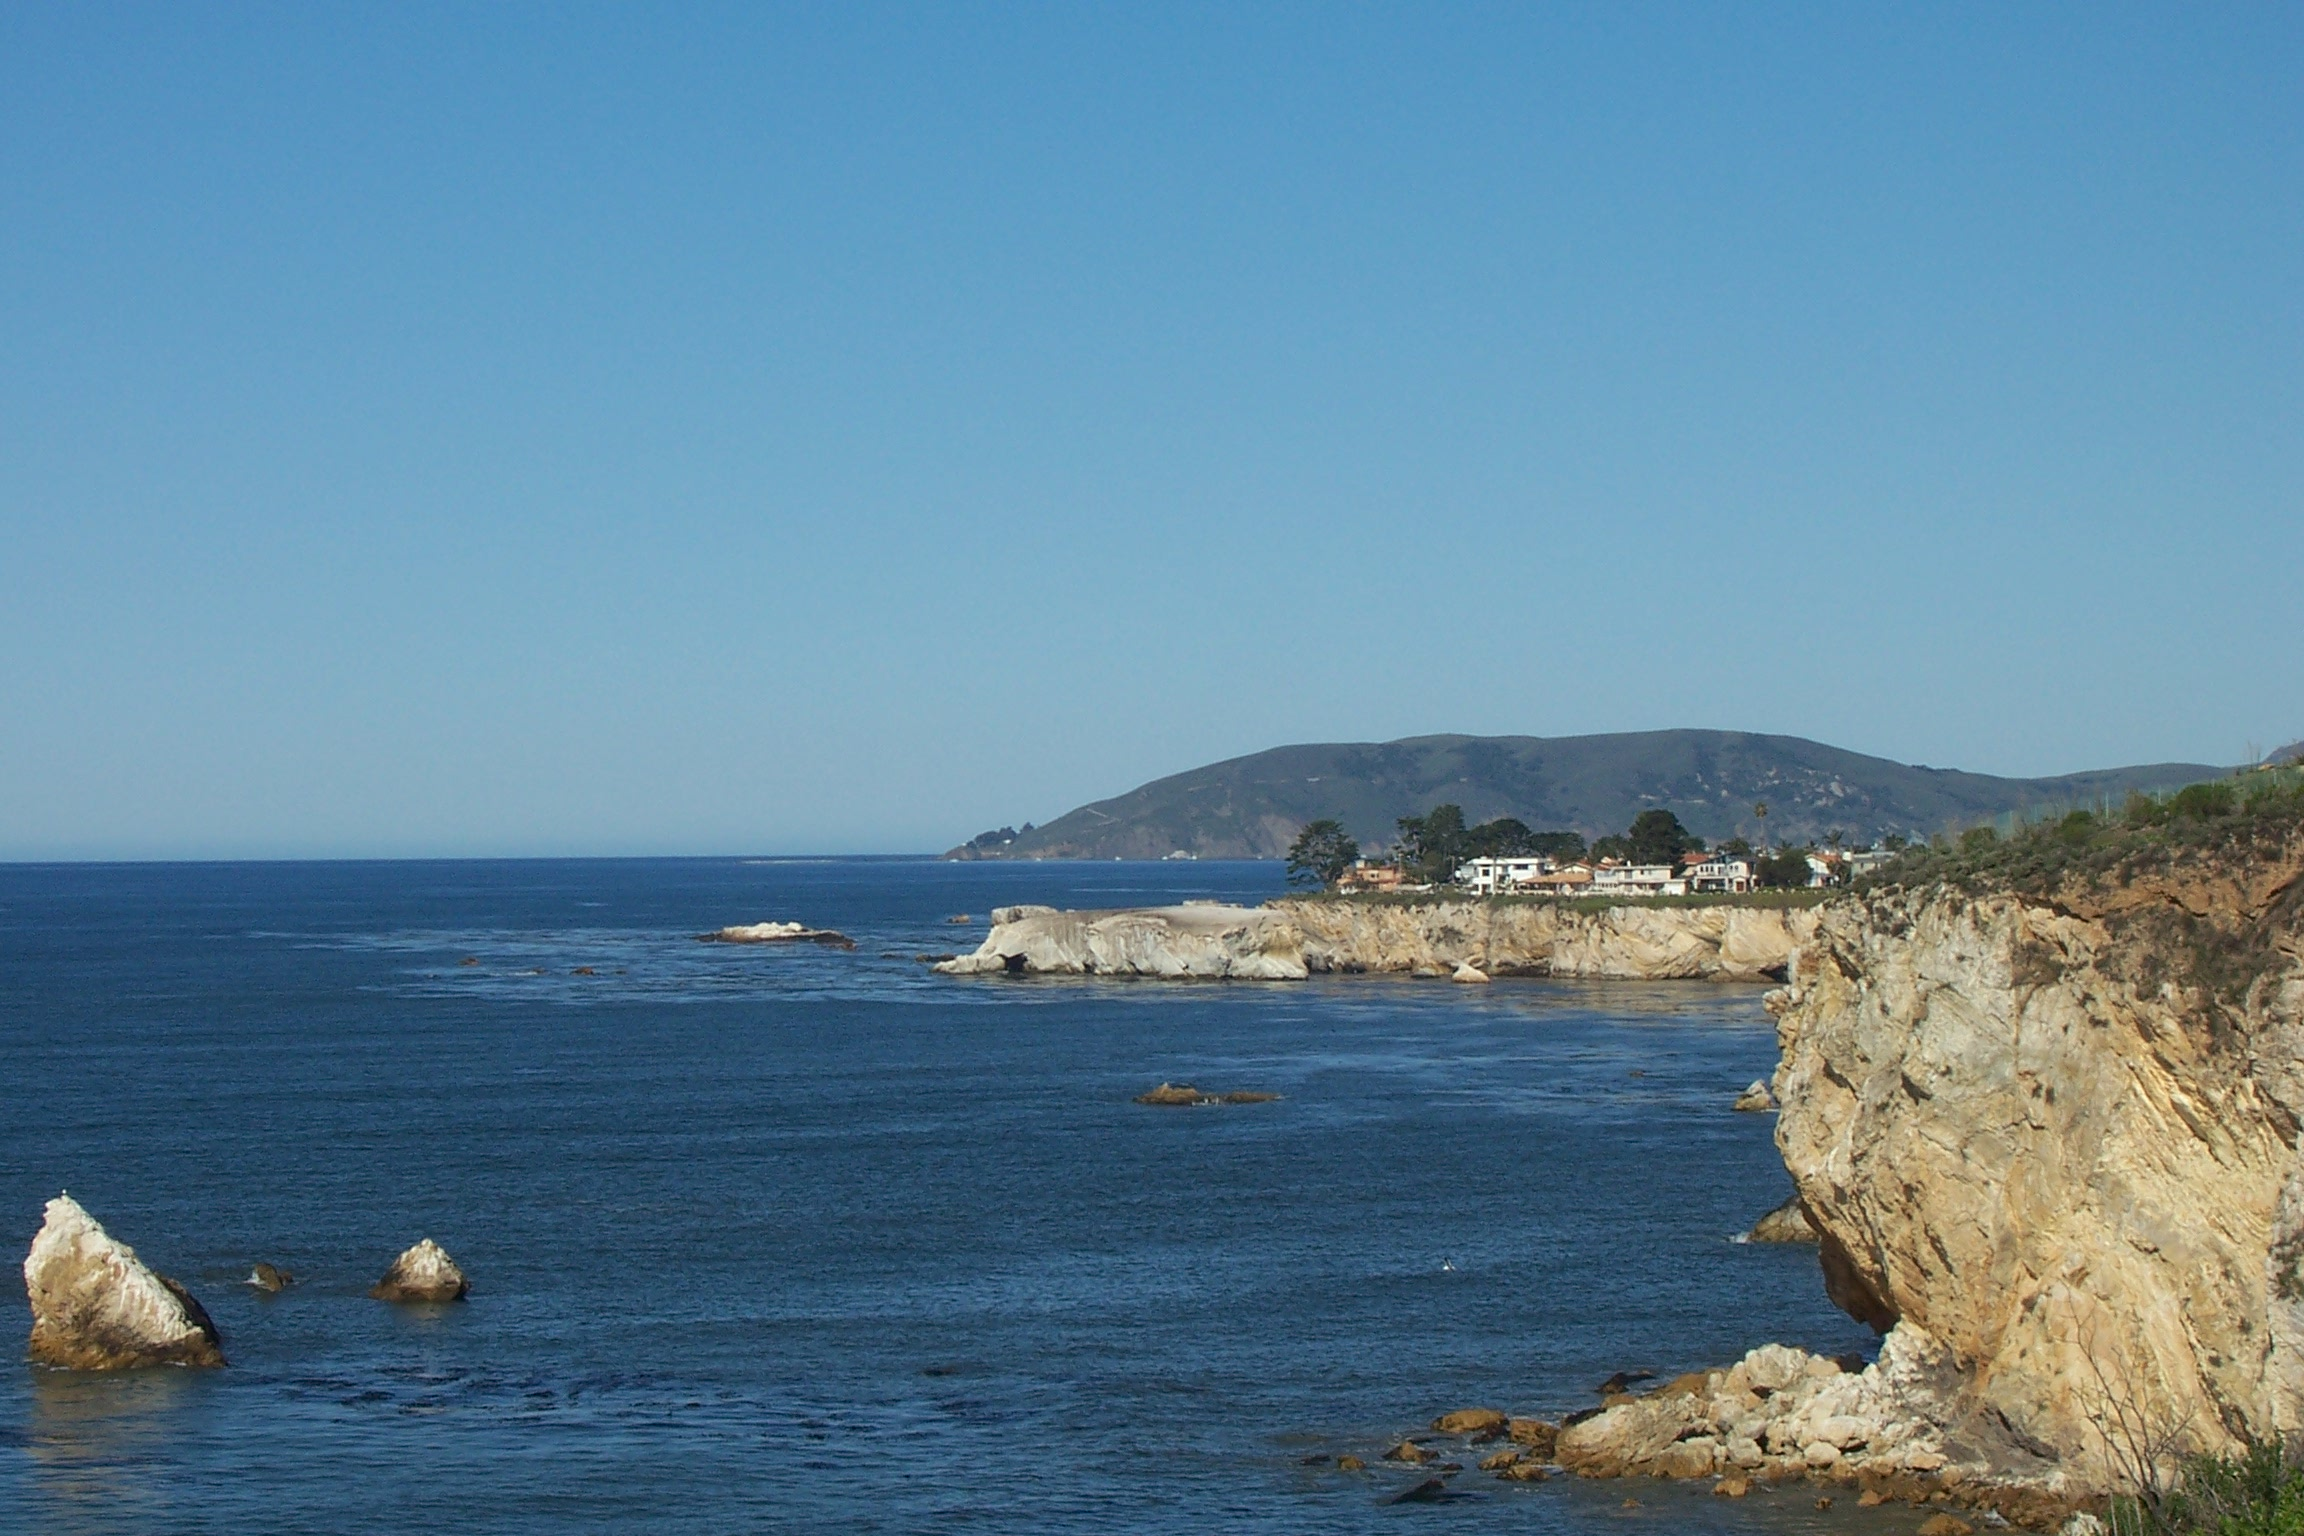 Pismo Beach Coastline